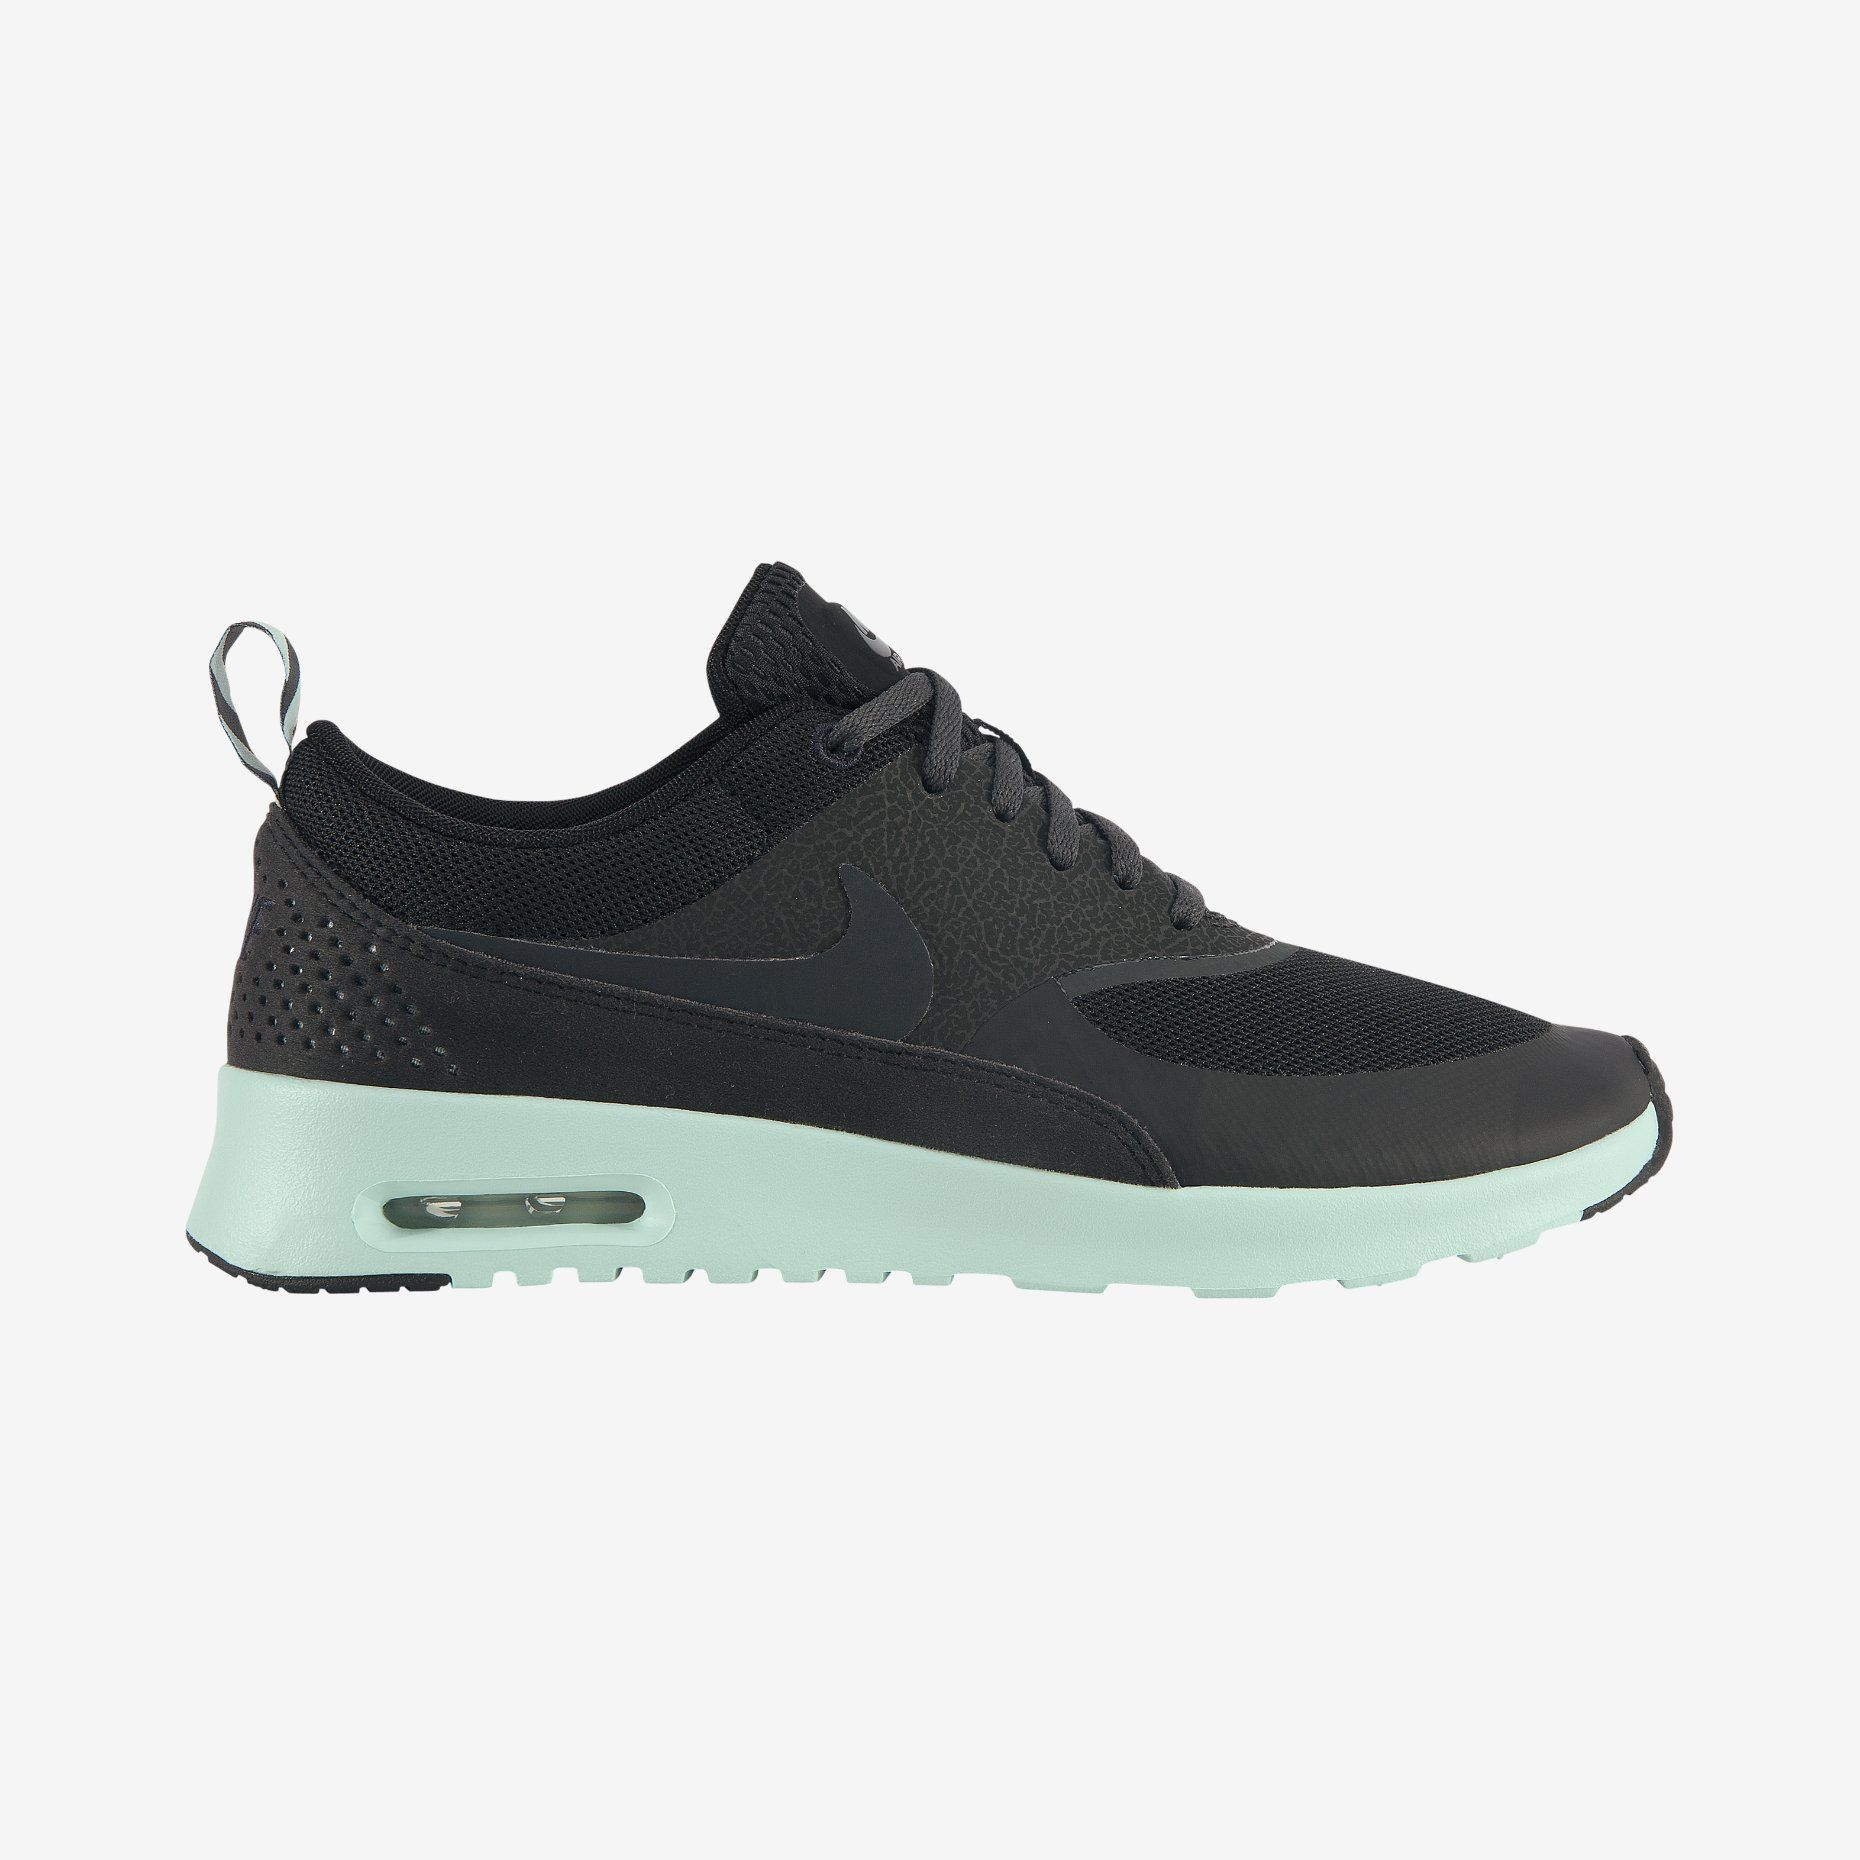 Nike Store. Nike Air Max Thea Women's Shoe | shoes | Nike